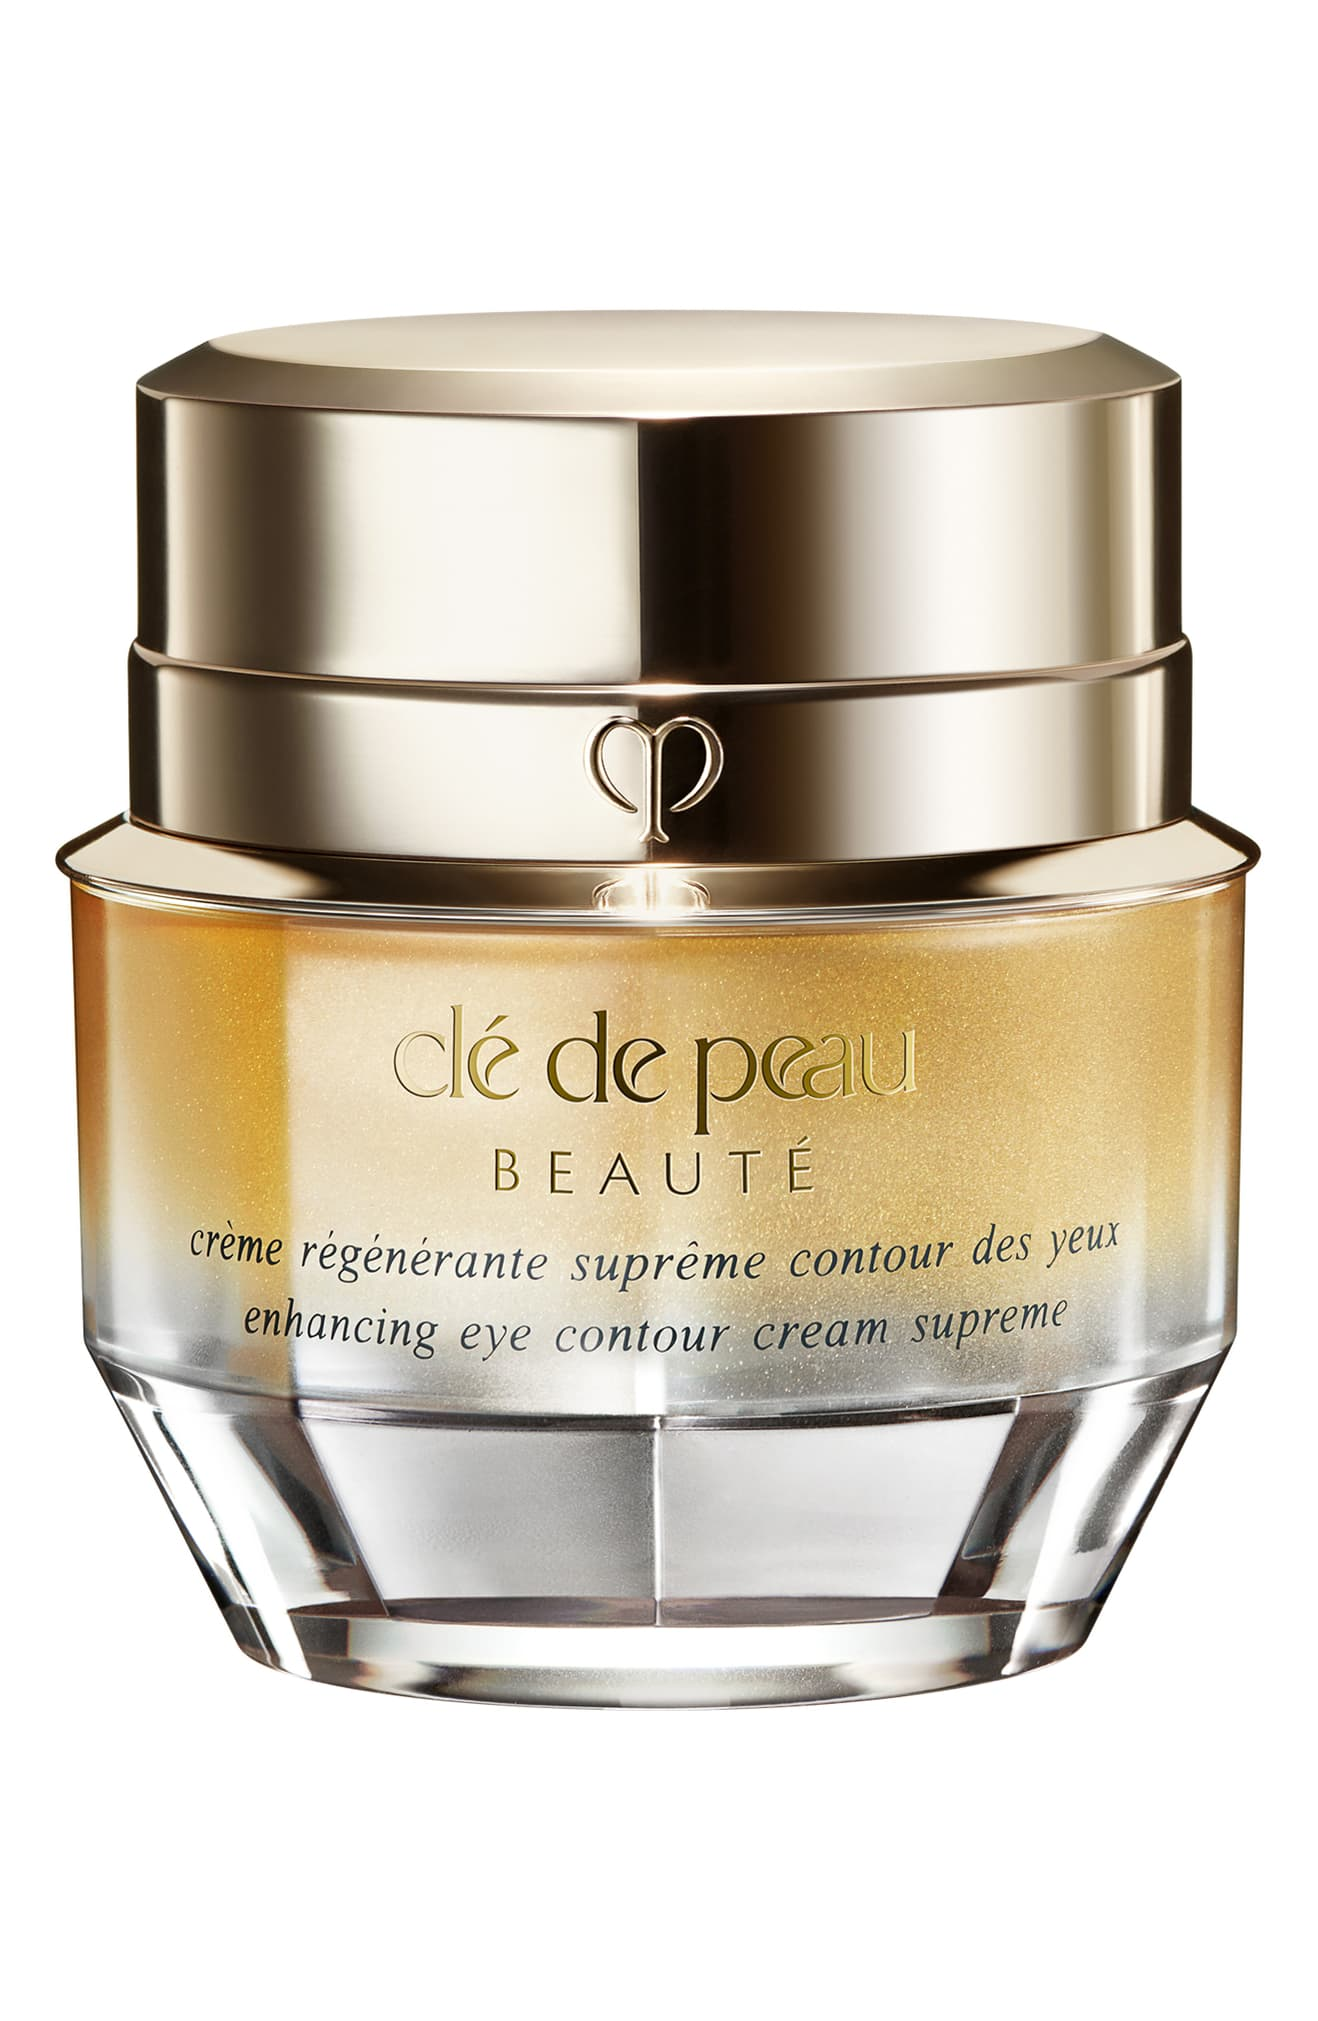 Clé De Peau Beauté-Enhancing Eye Contour Cream Supreme